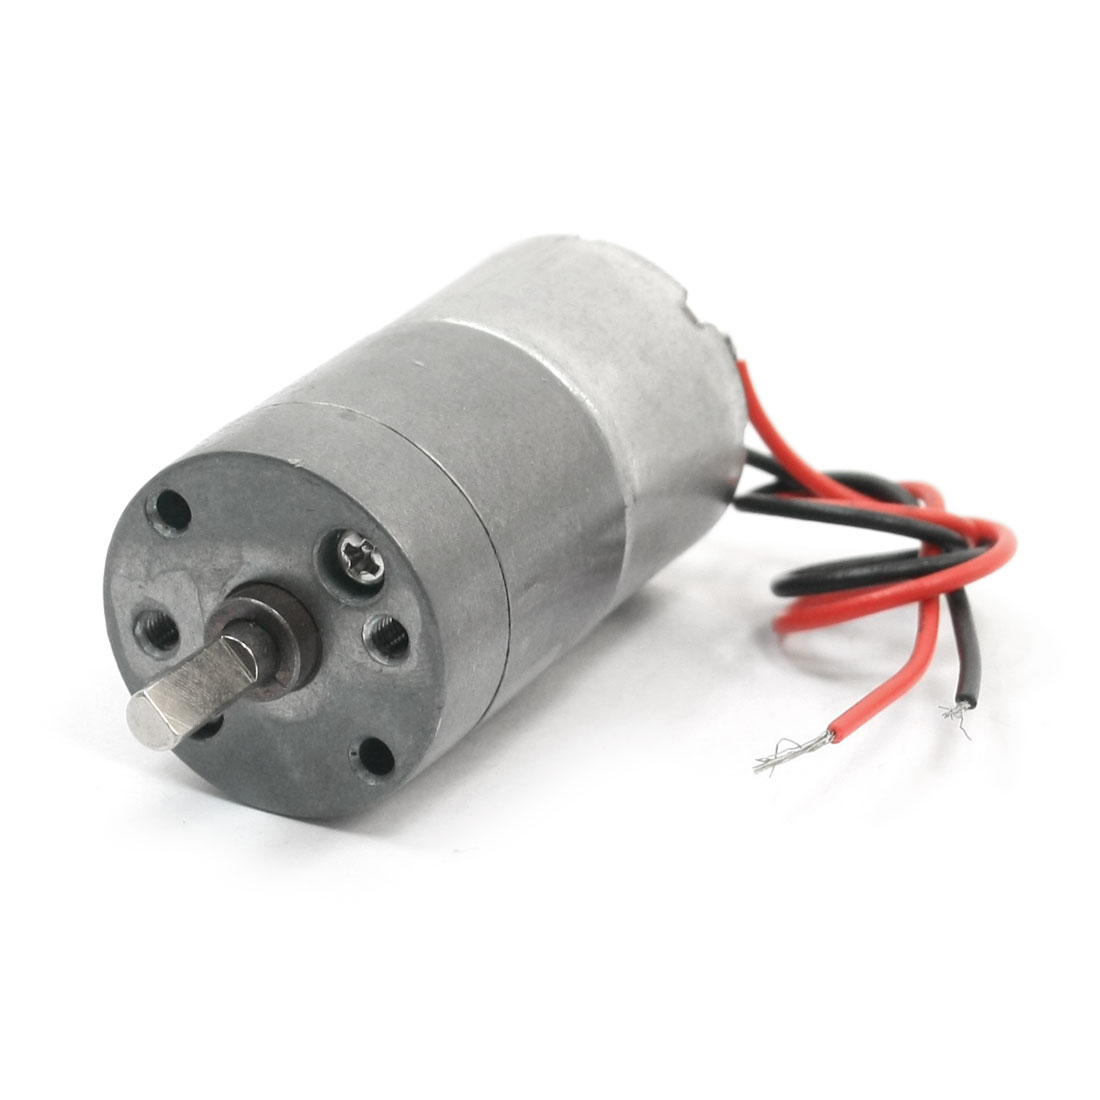 4mm Drive Shaft 75 r/min Output High Torque Rotary Speed Reducing 2-Wire Connect Cylinder Shape Gearbox Motor DC 12V